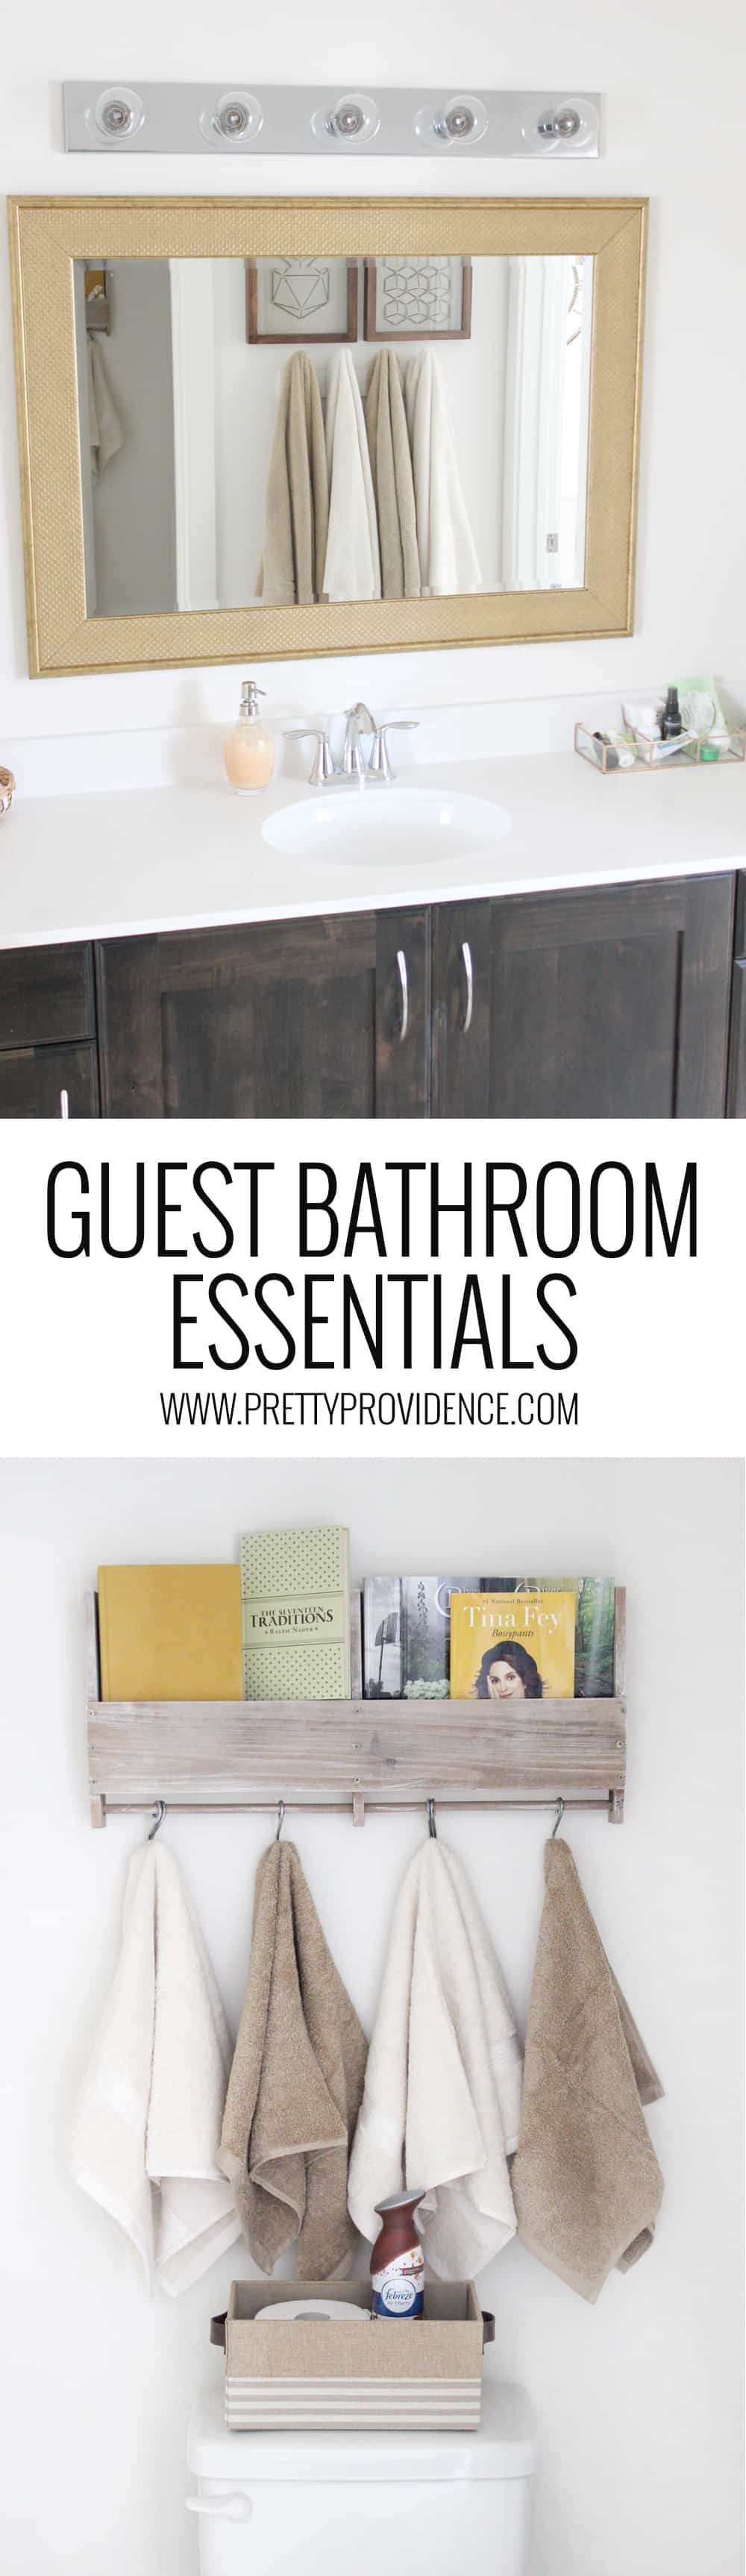 I am loving this guest bathroom! Especially love the little touches she did to make the guests feel welcome and comfortable! So simple, but it goes a long way!